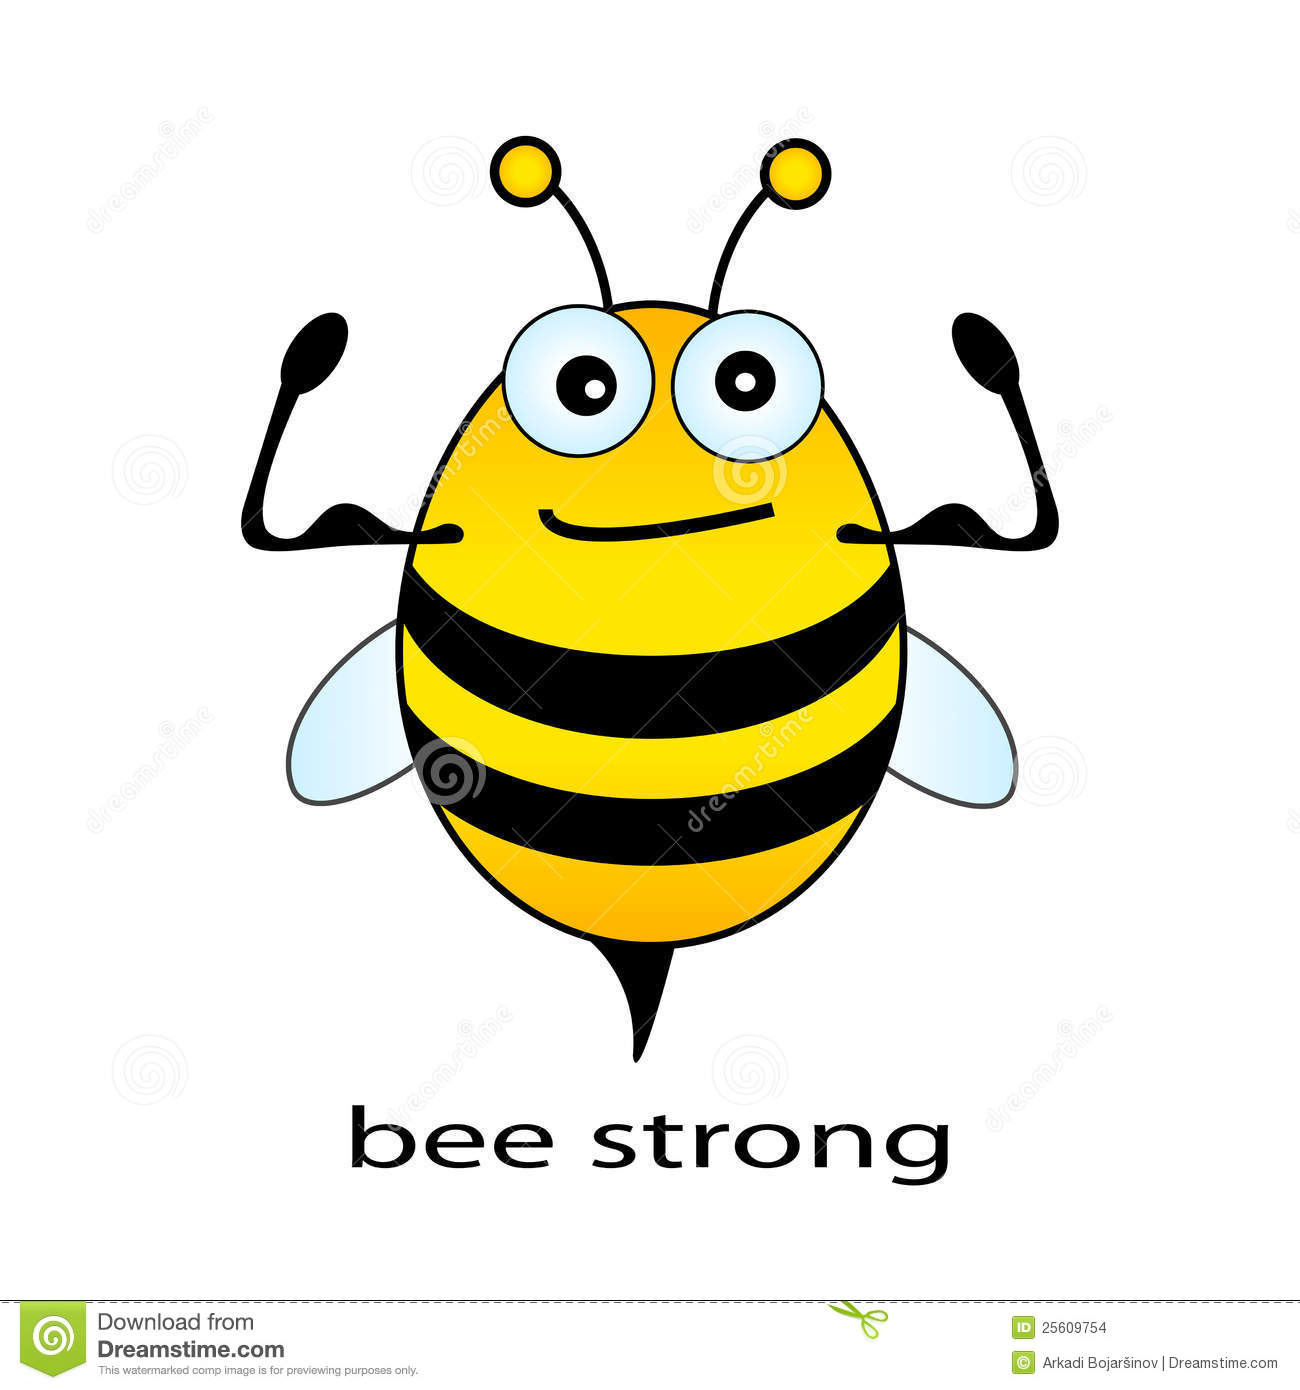 bee strong stock images image 25609754 funny thank you clip art for the popcorn funny thank you clip art for the popcorn